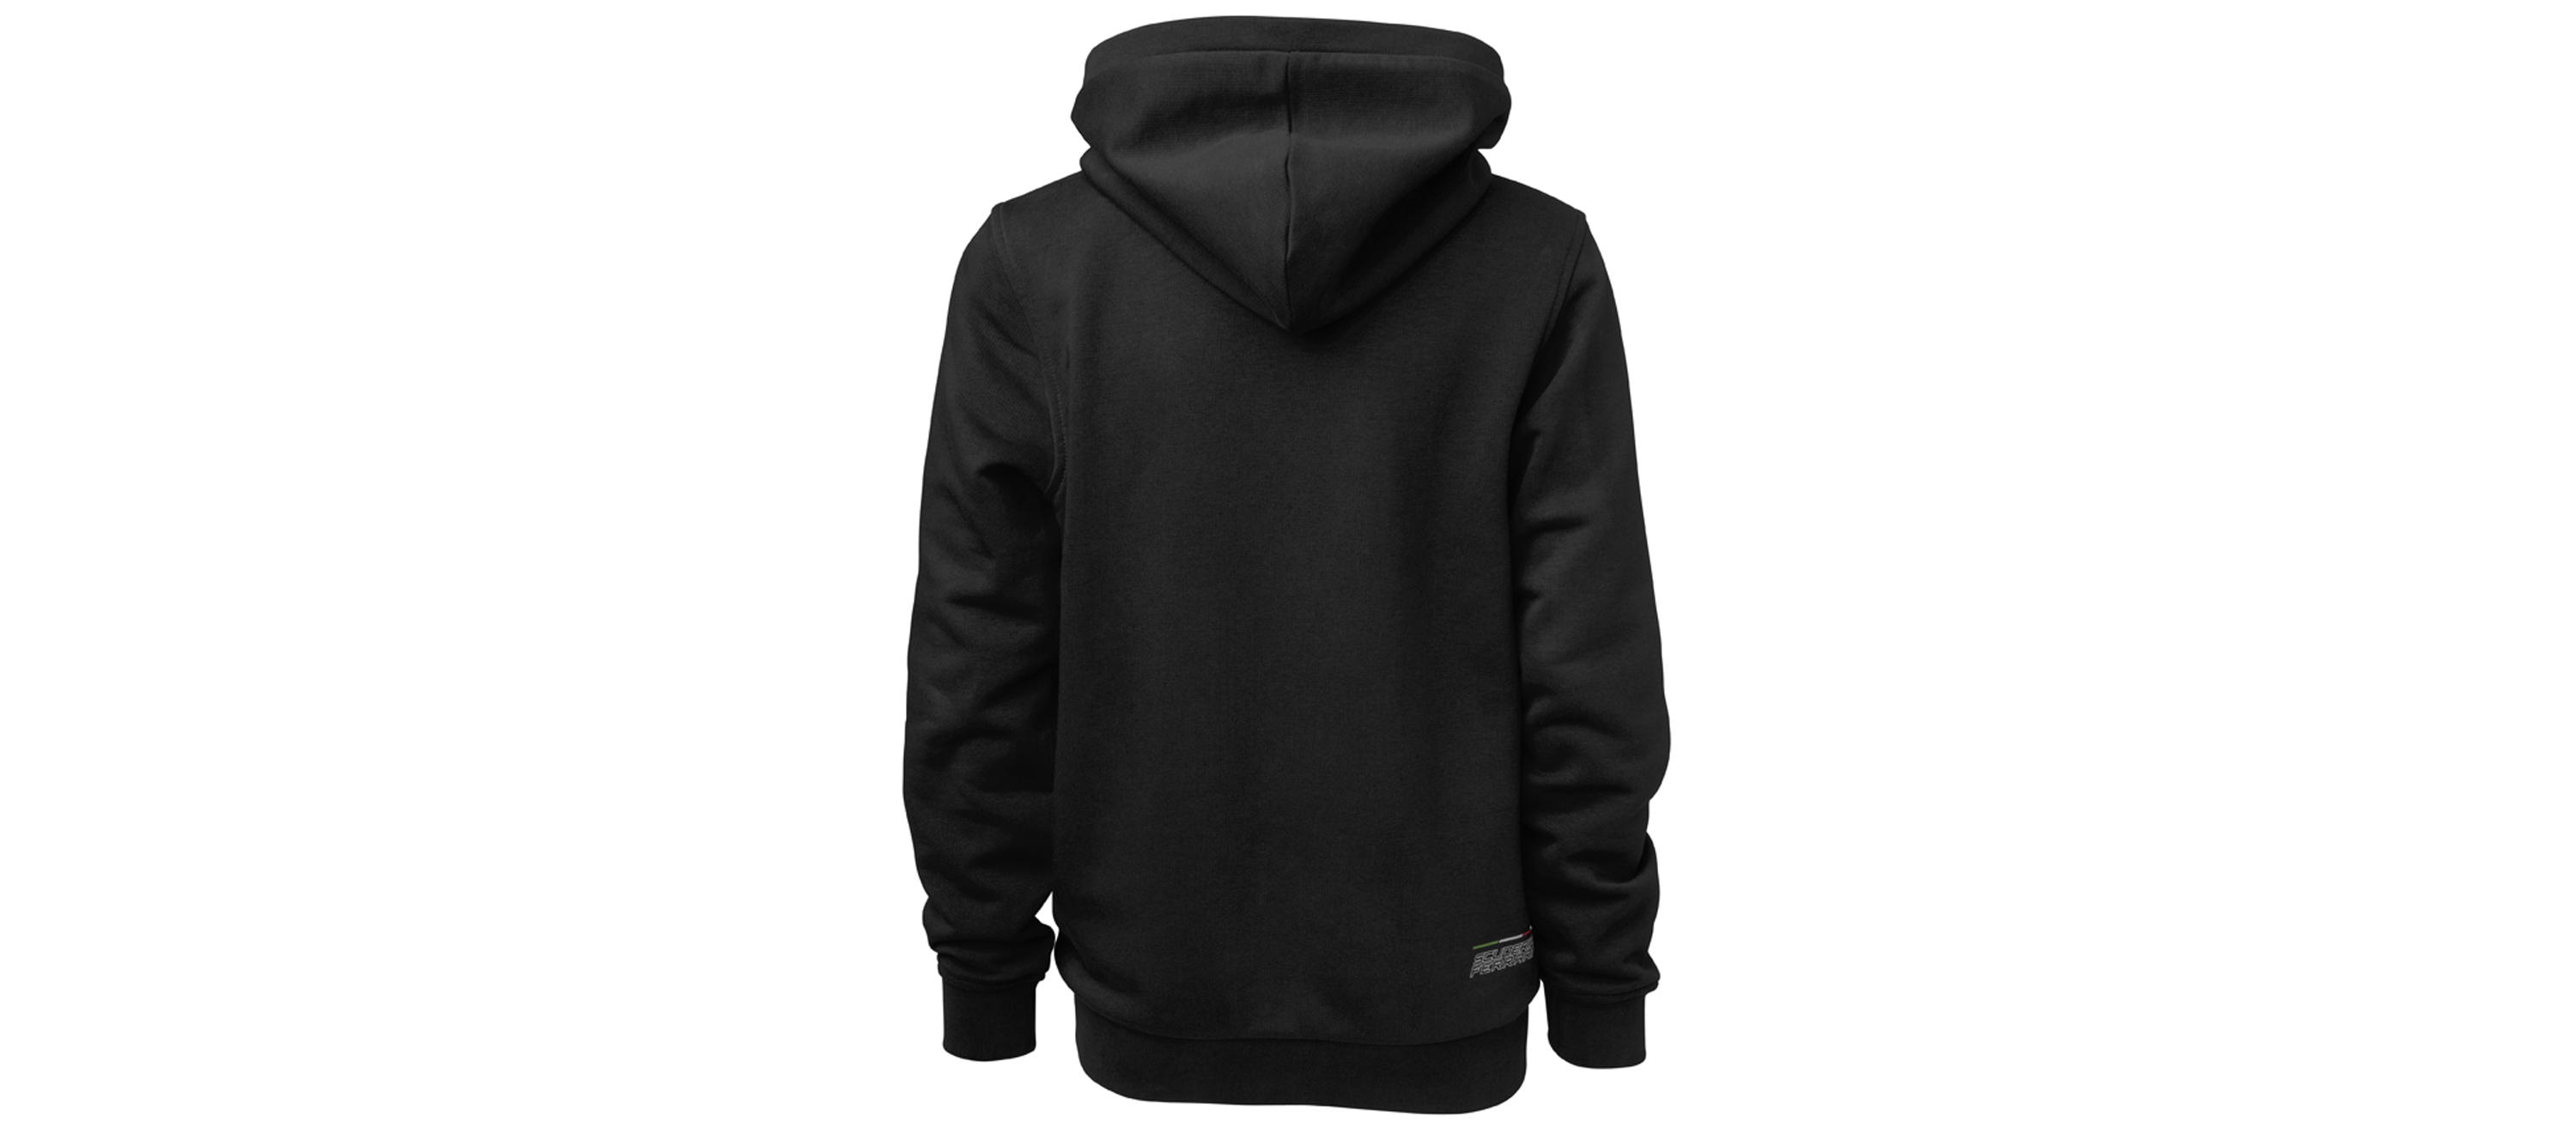 Black Hoodie Sweatshirt Photo Album - Reikian